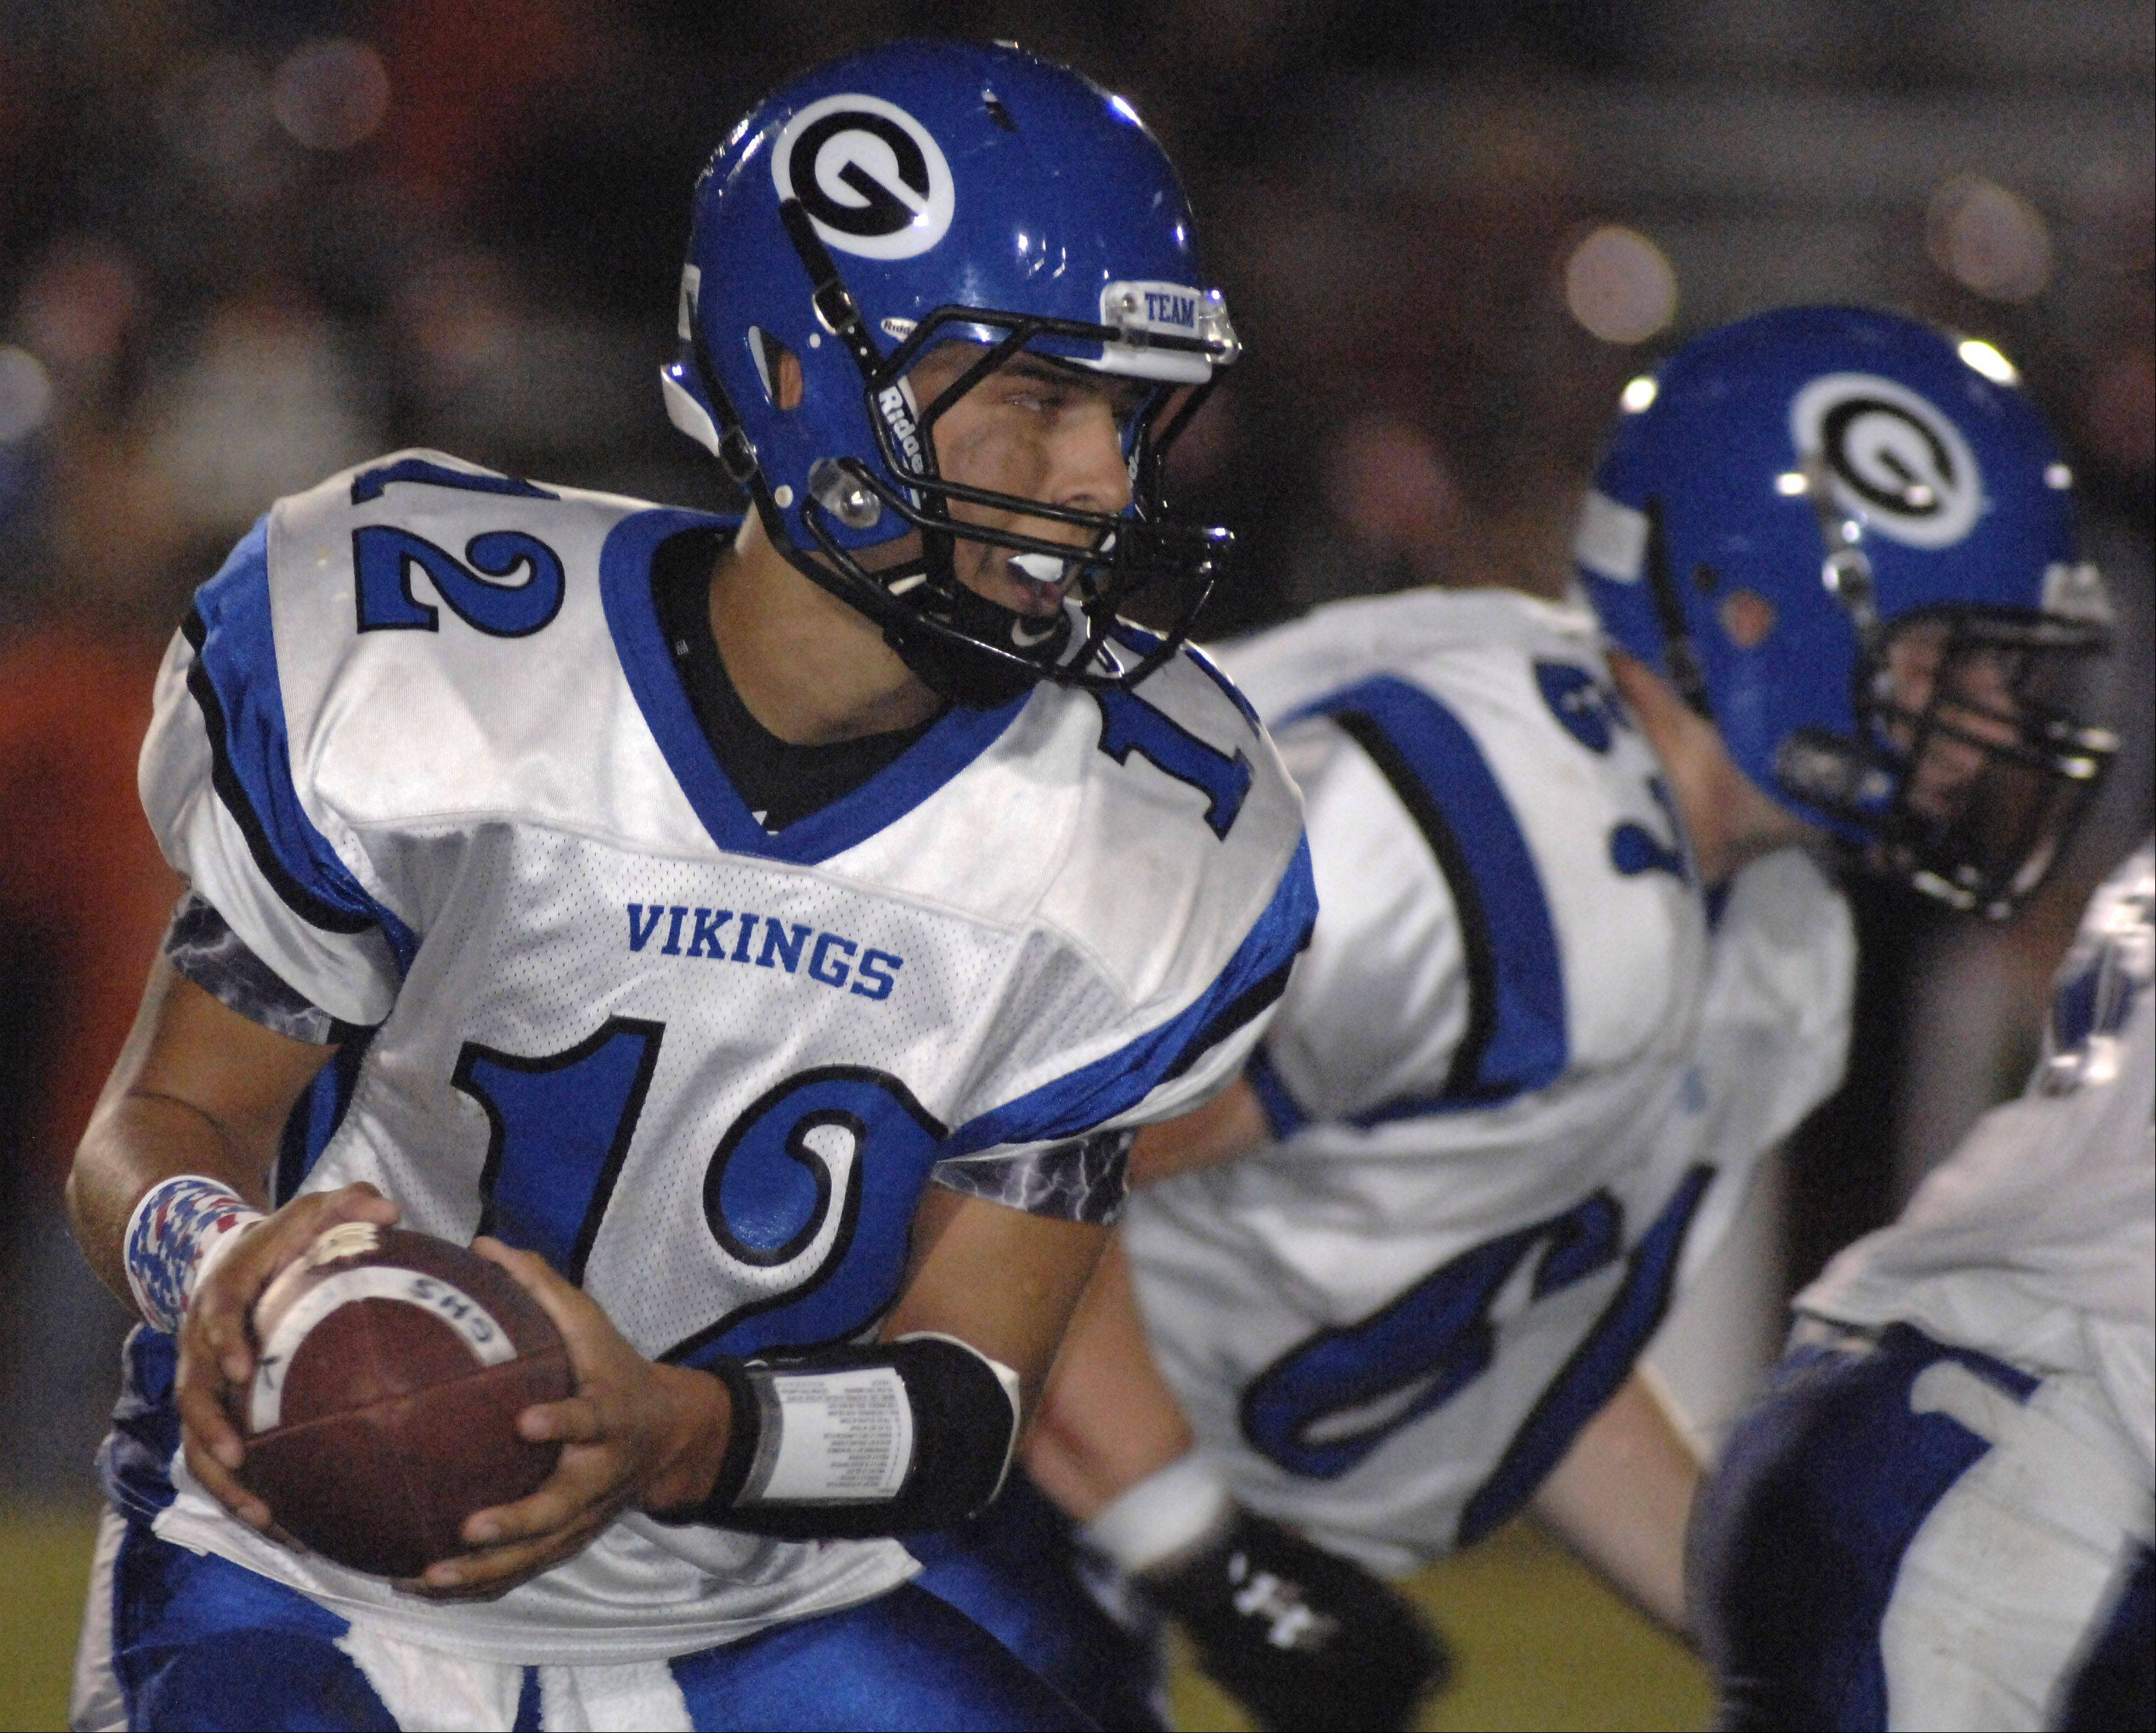 Geneva quarterback Matt Williams readies to pass off the ball on Friday, September 9.